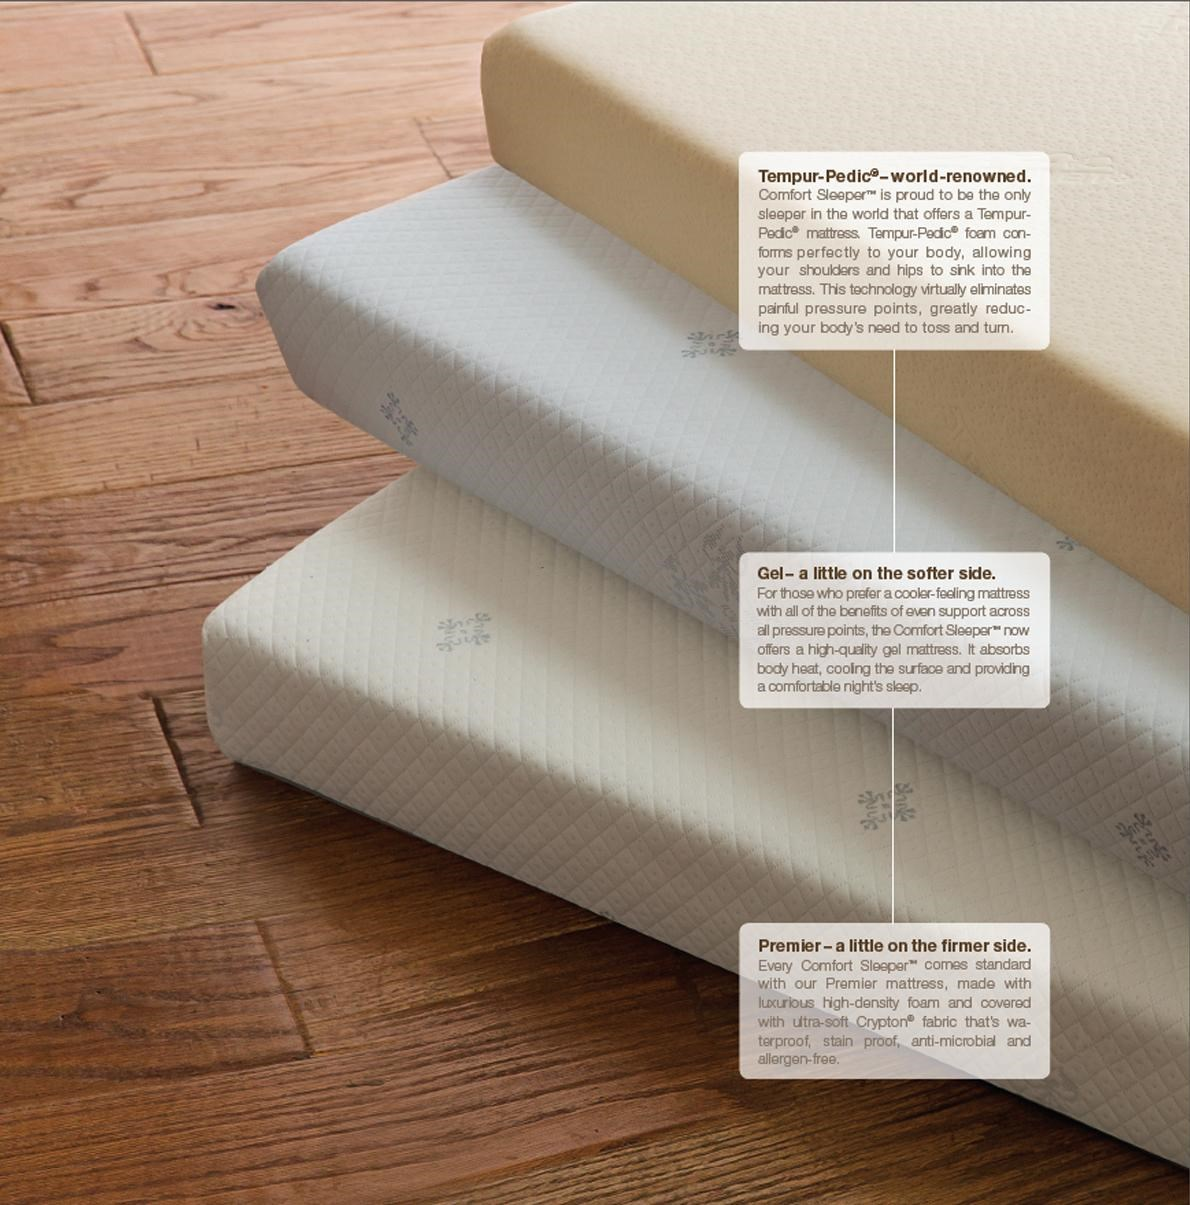 the comfort sleeper mattress options